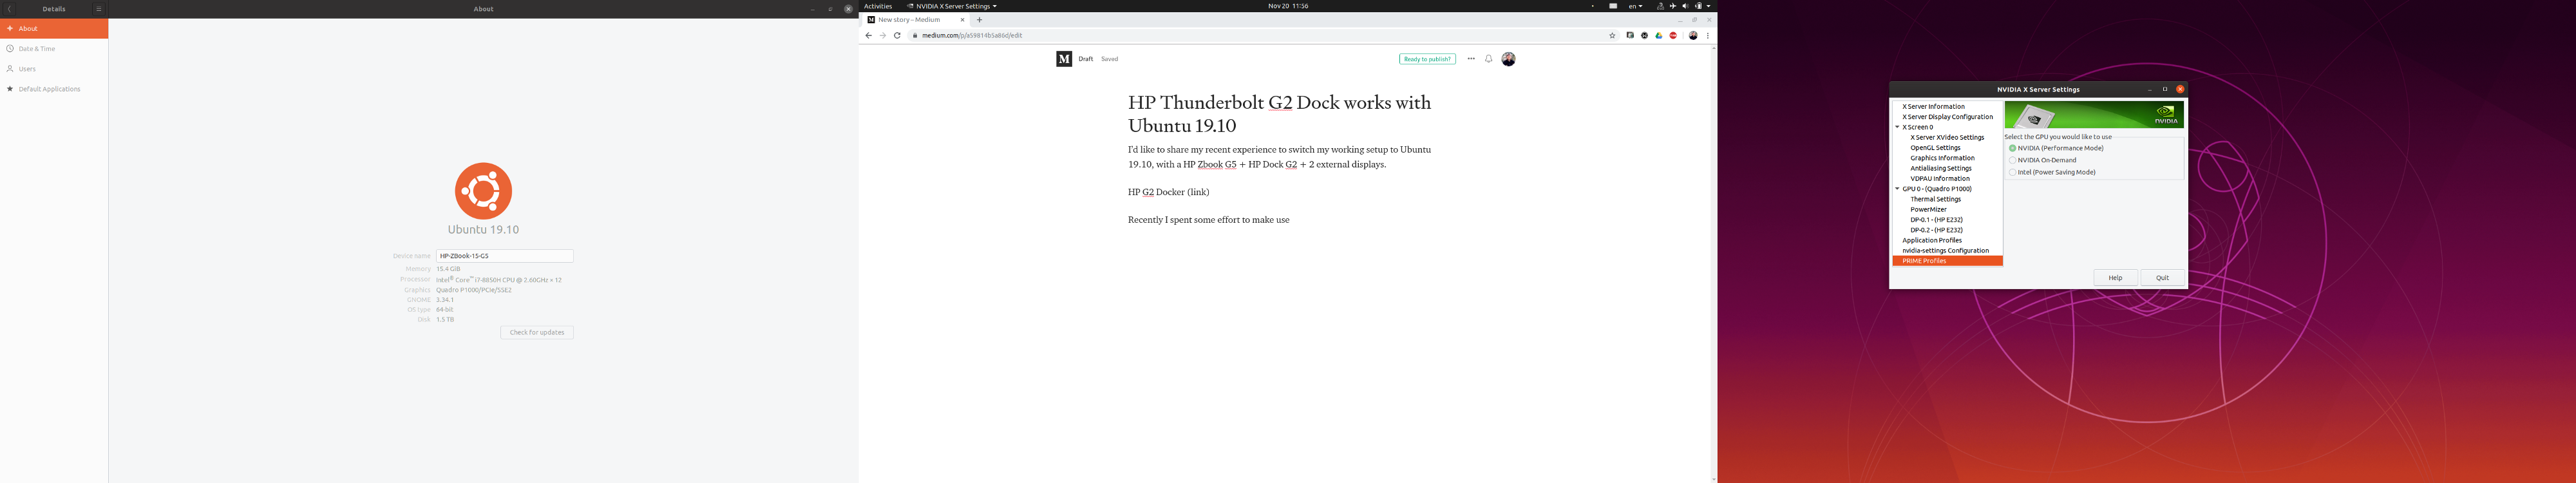 HP Thunderbolt G2 Dock works with Ubuntu 19 10 - Liejun Tao